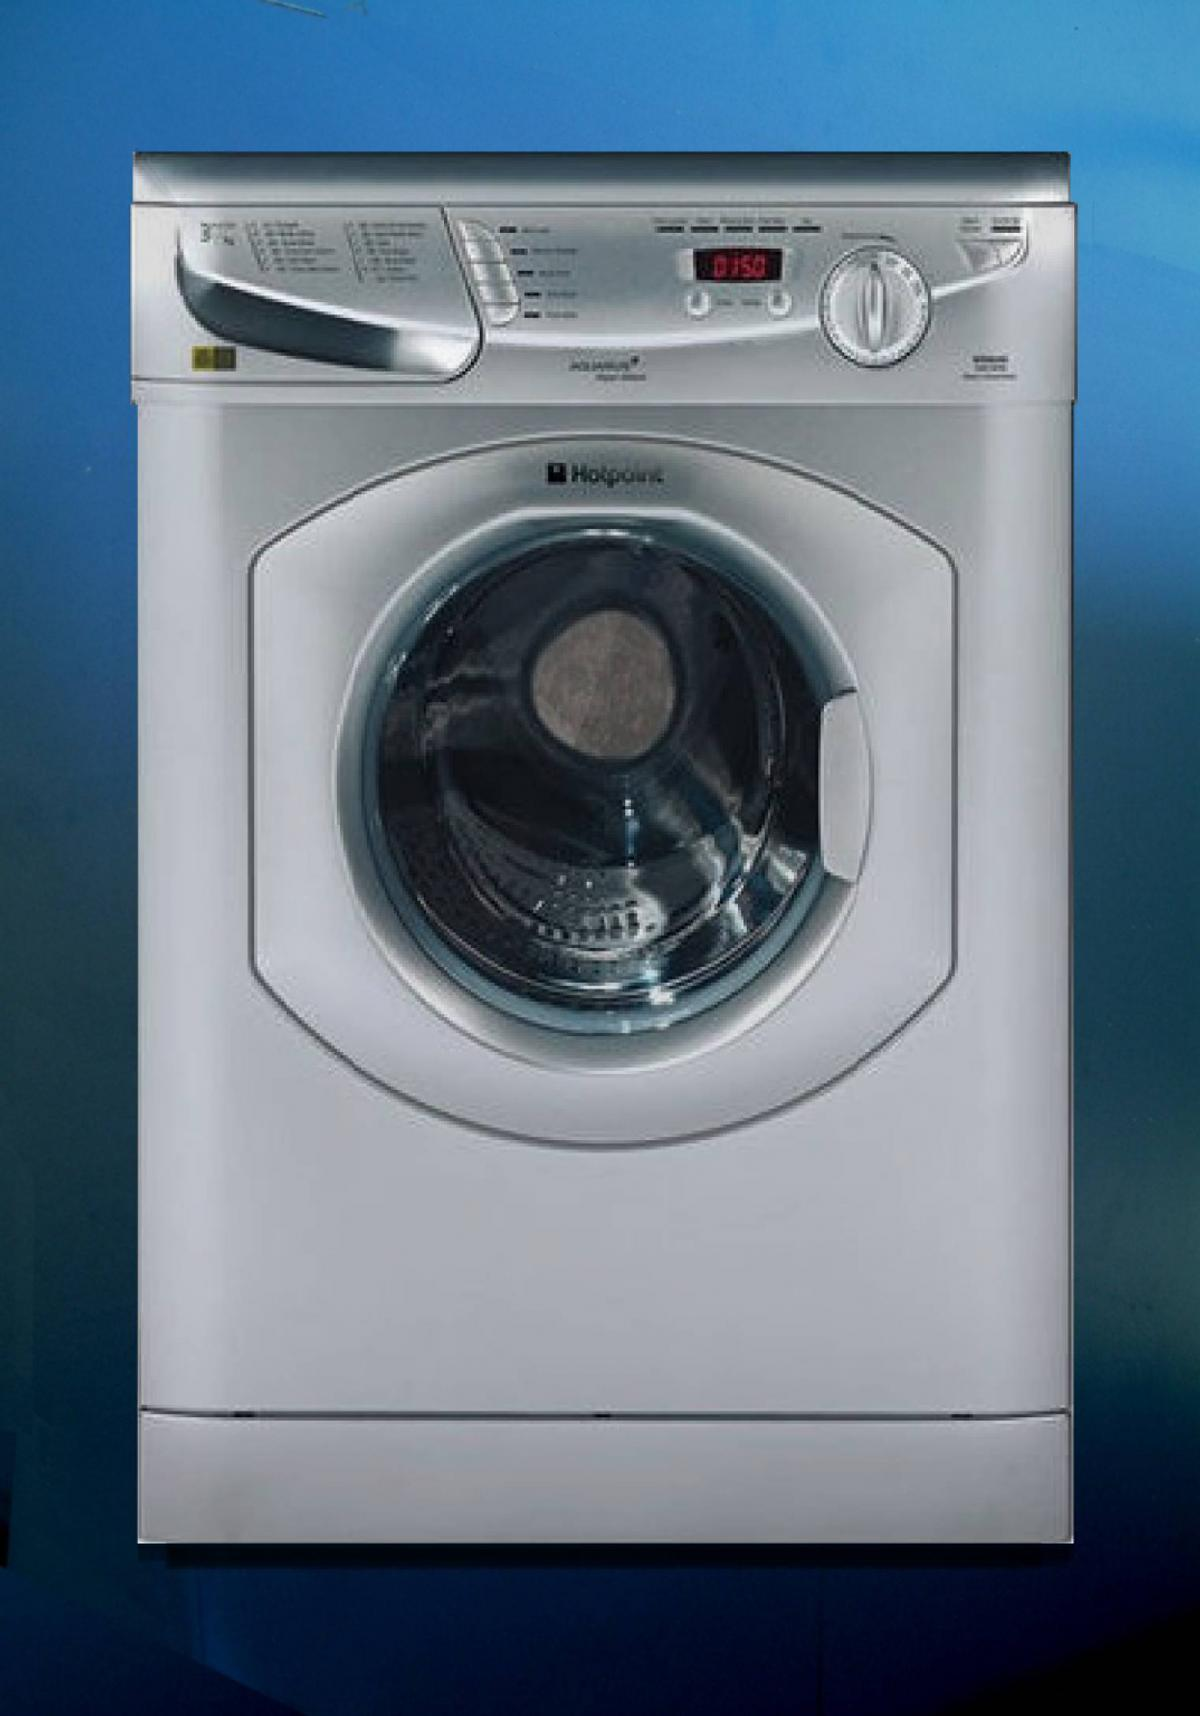 Hotpoint Wd645 Washer Dryer In B26 Birmingham For 120 00 For Sale Shpock